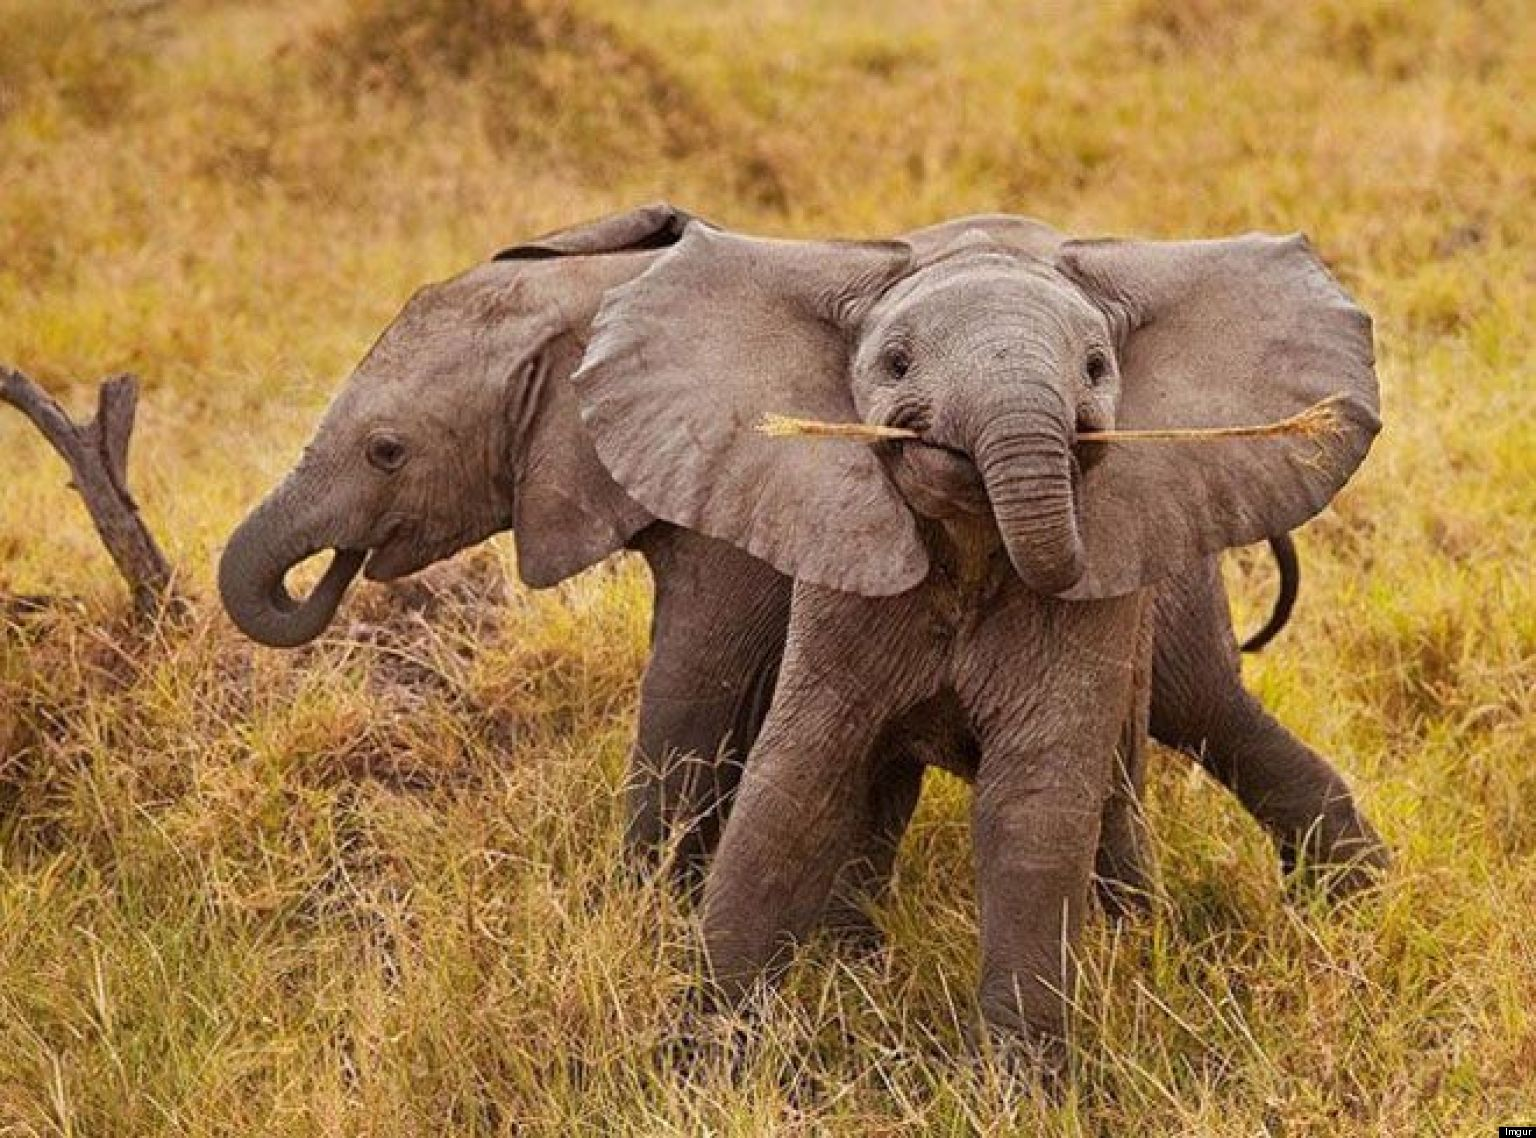 Elephant newborn baby - photo#24